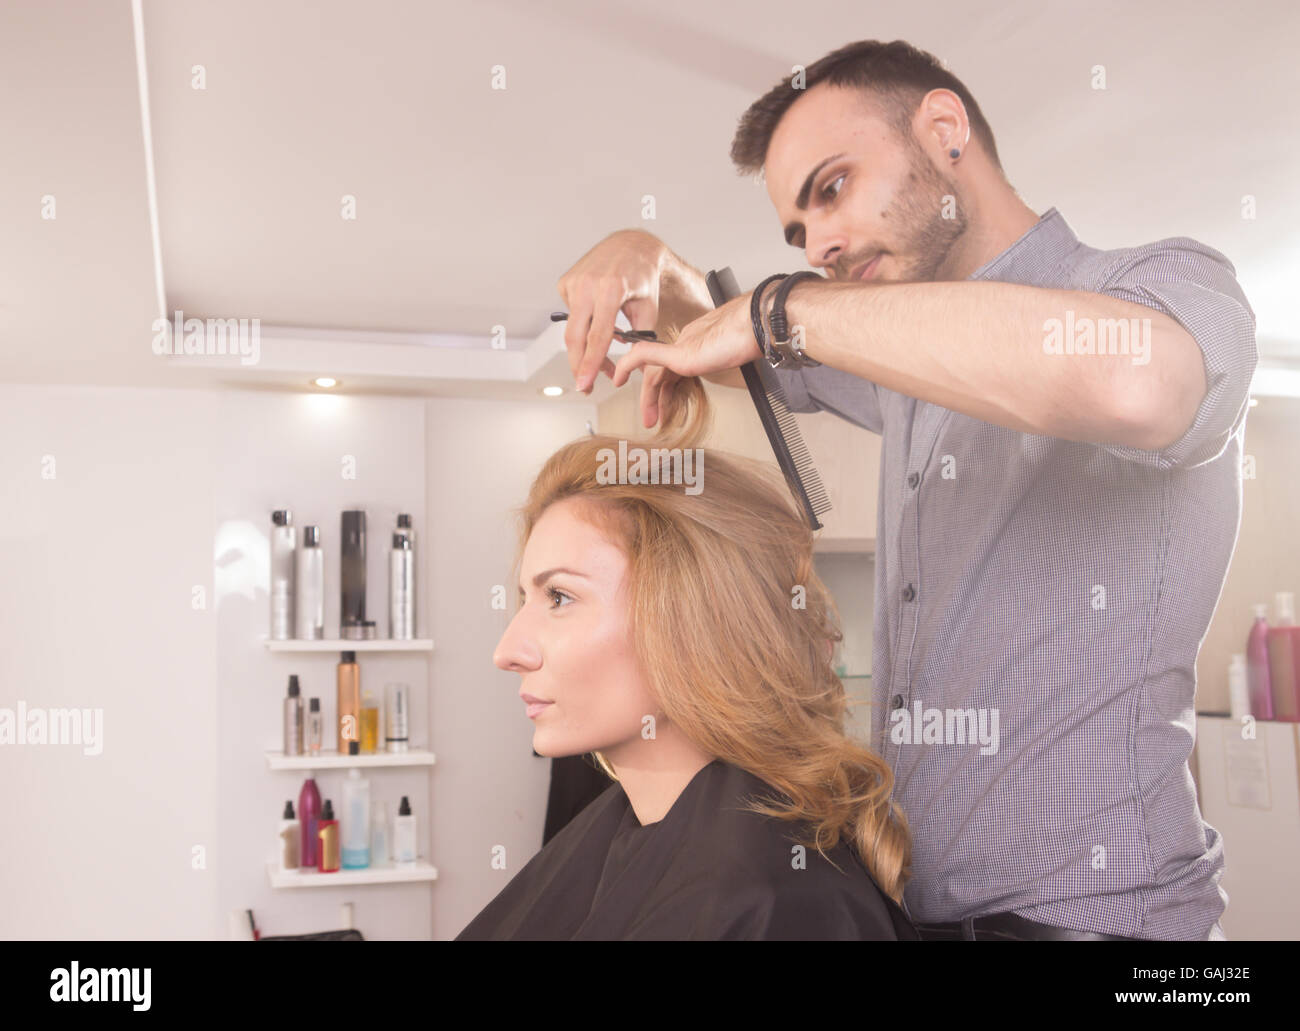 side view, hairdresser cutting woman hair scissors - Stock Image